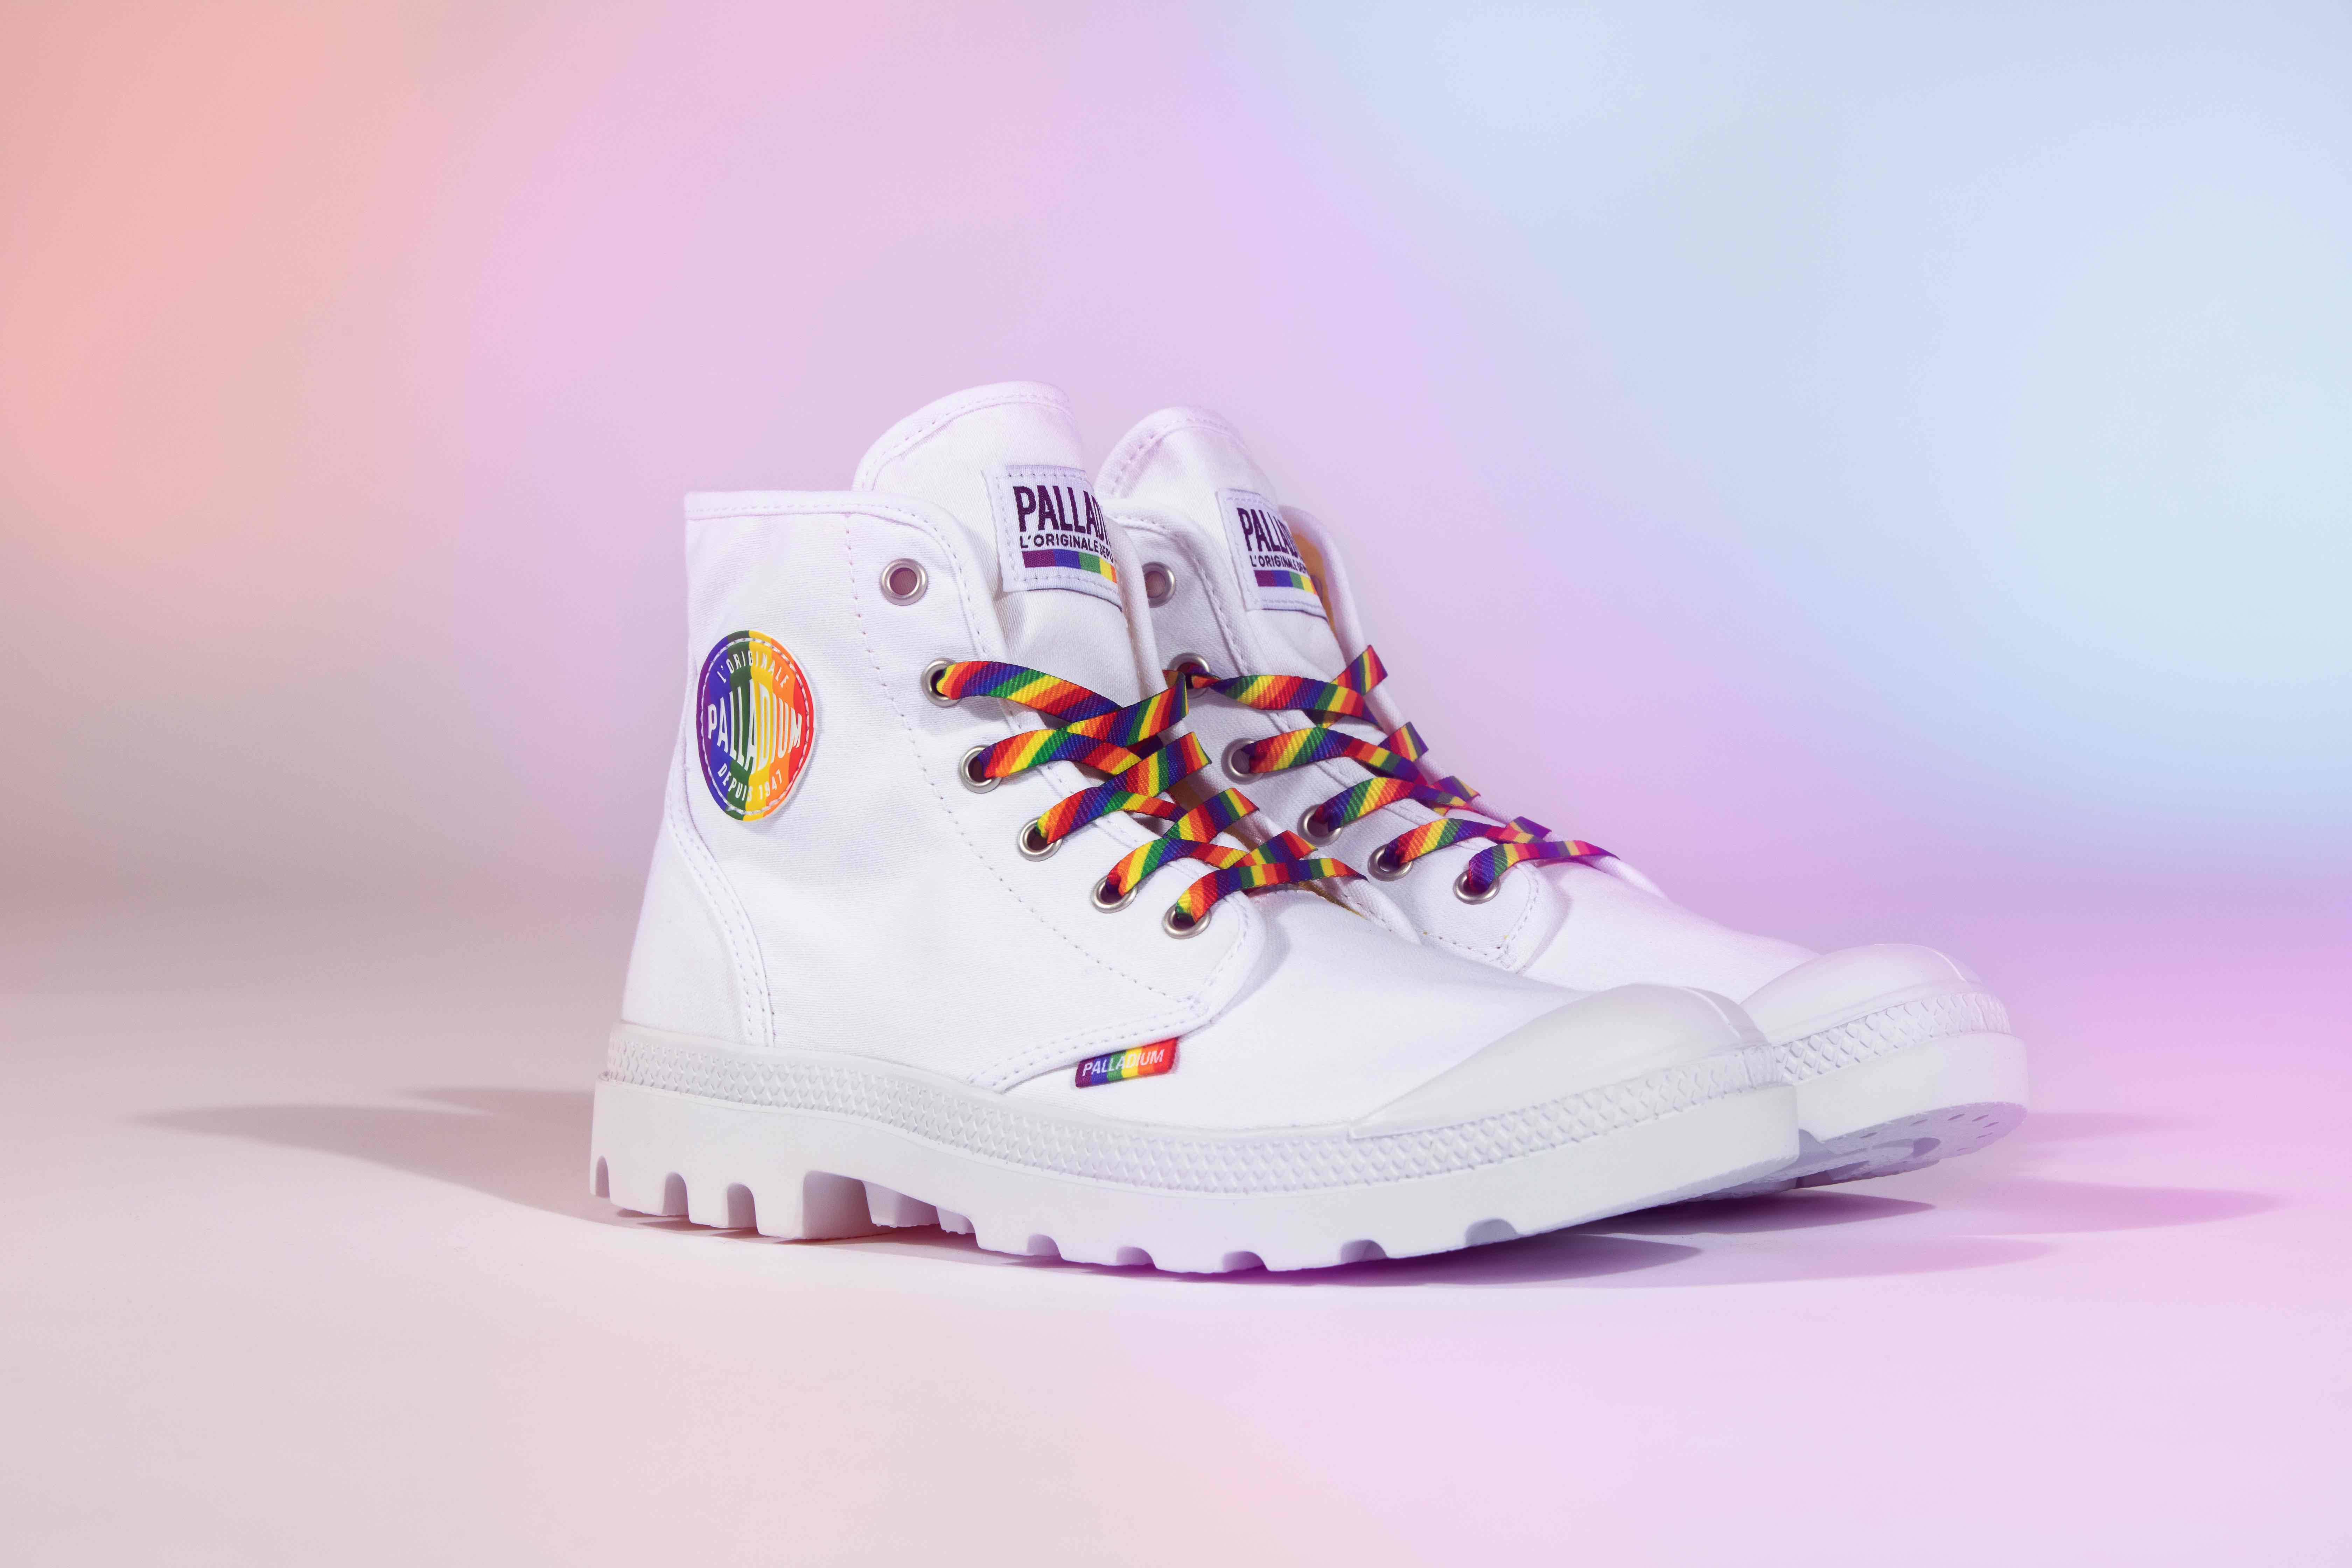 Palladium launch their new pride collection